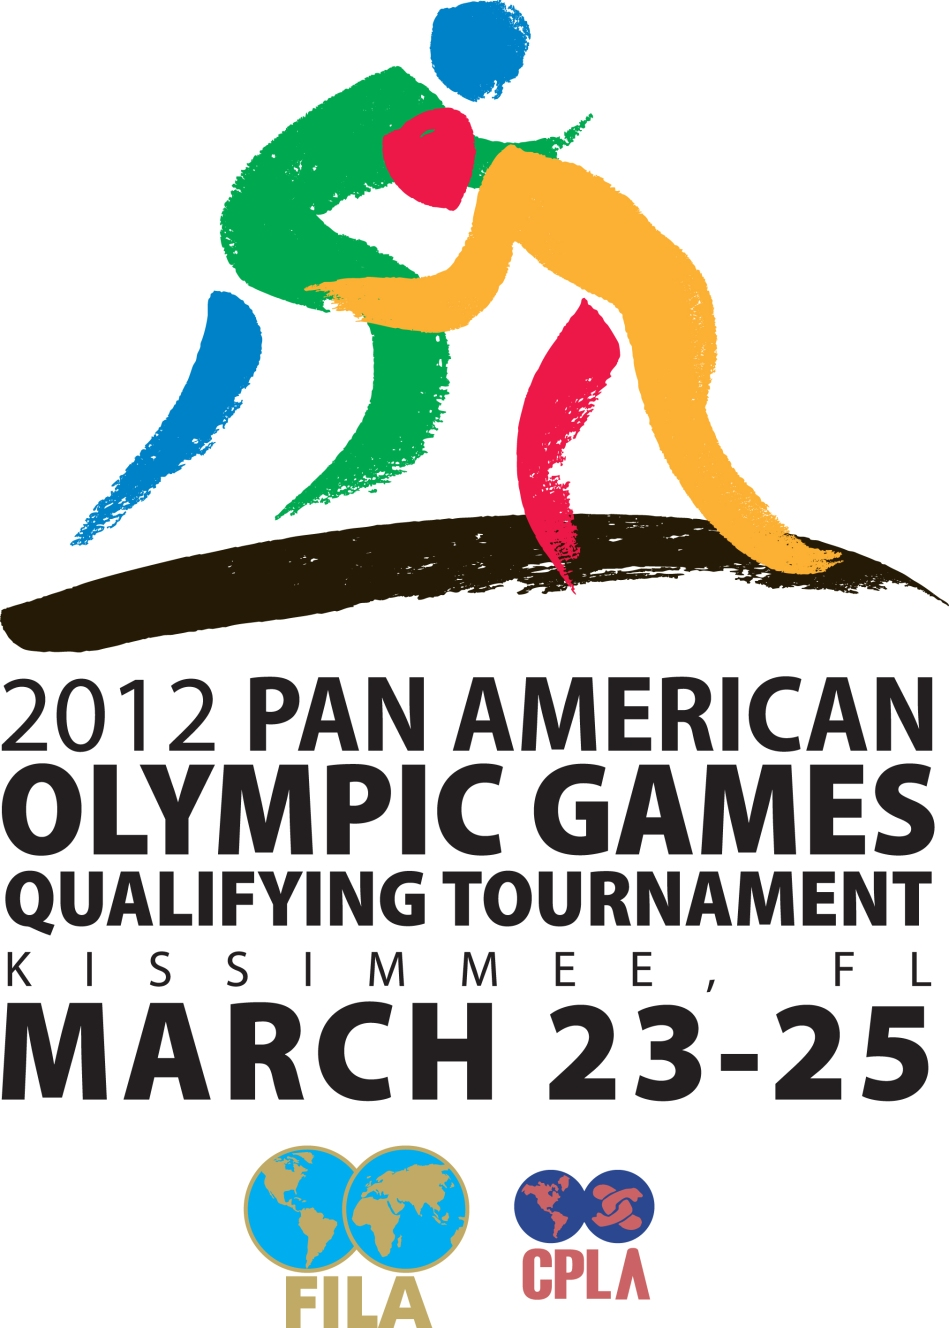 2012 Pan American Olympic Games